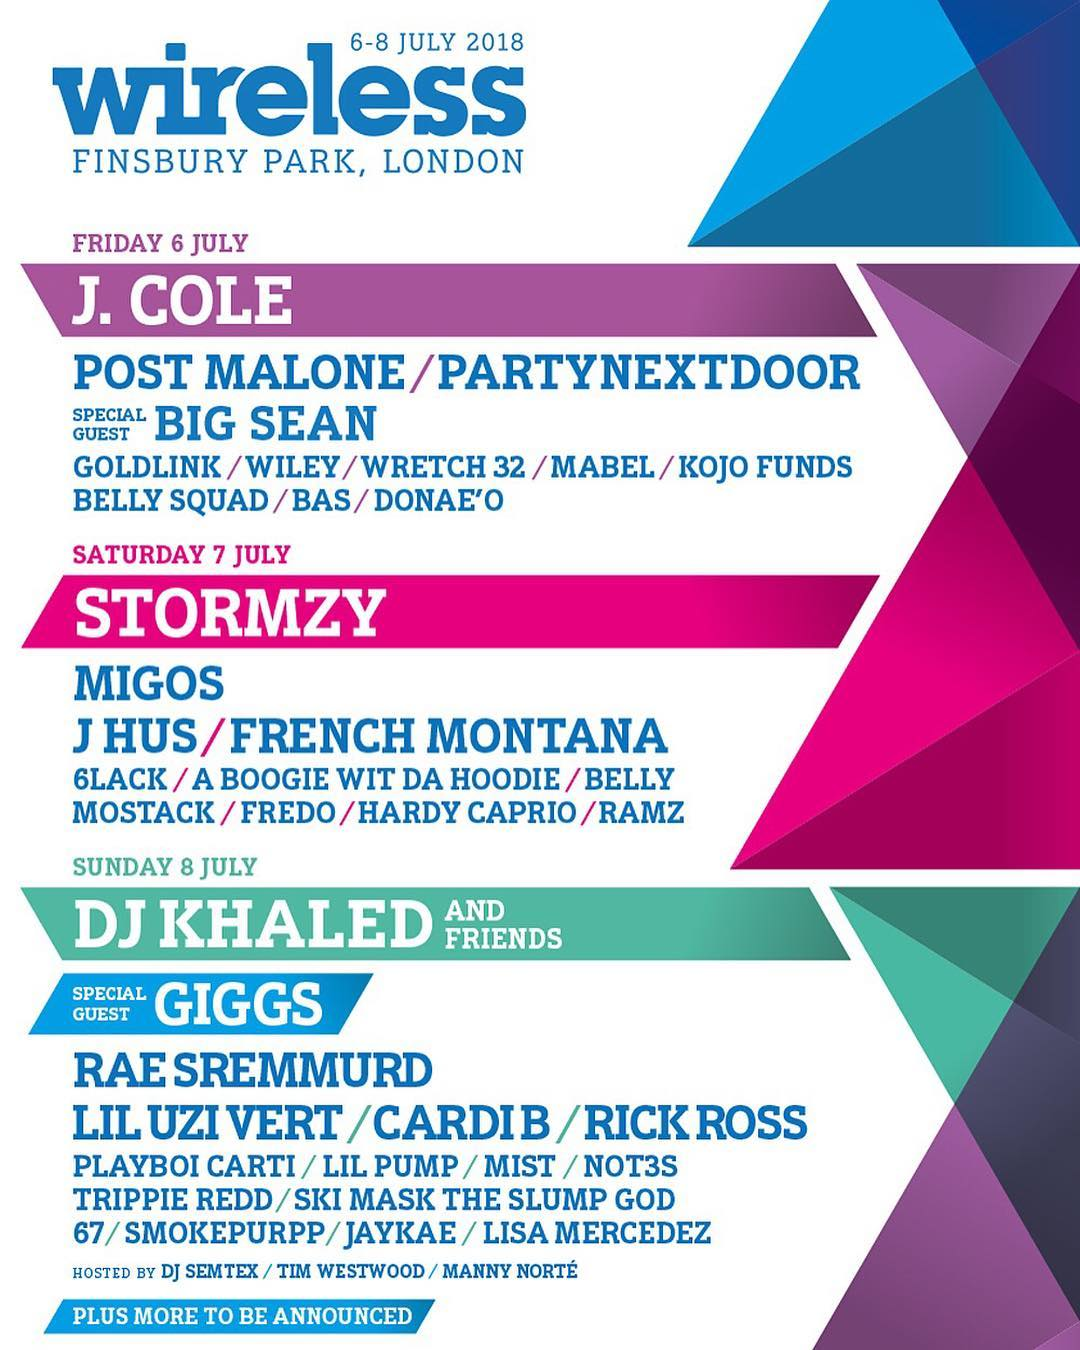 .@Stormzy1, @JColeNC, and @djkhaled to headline London's Wireless Festival. https://t.co/Wjr99RZJQp https://t.co/PWIsEyqJDt